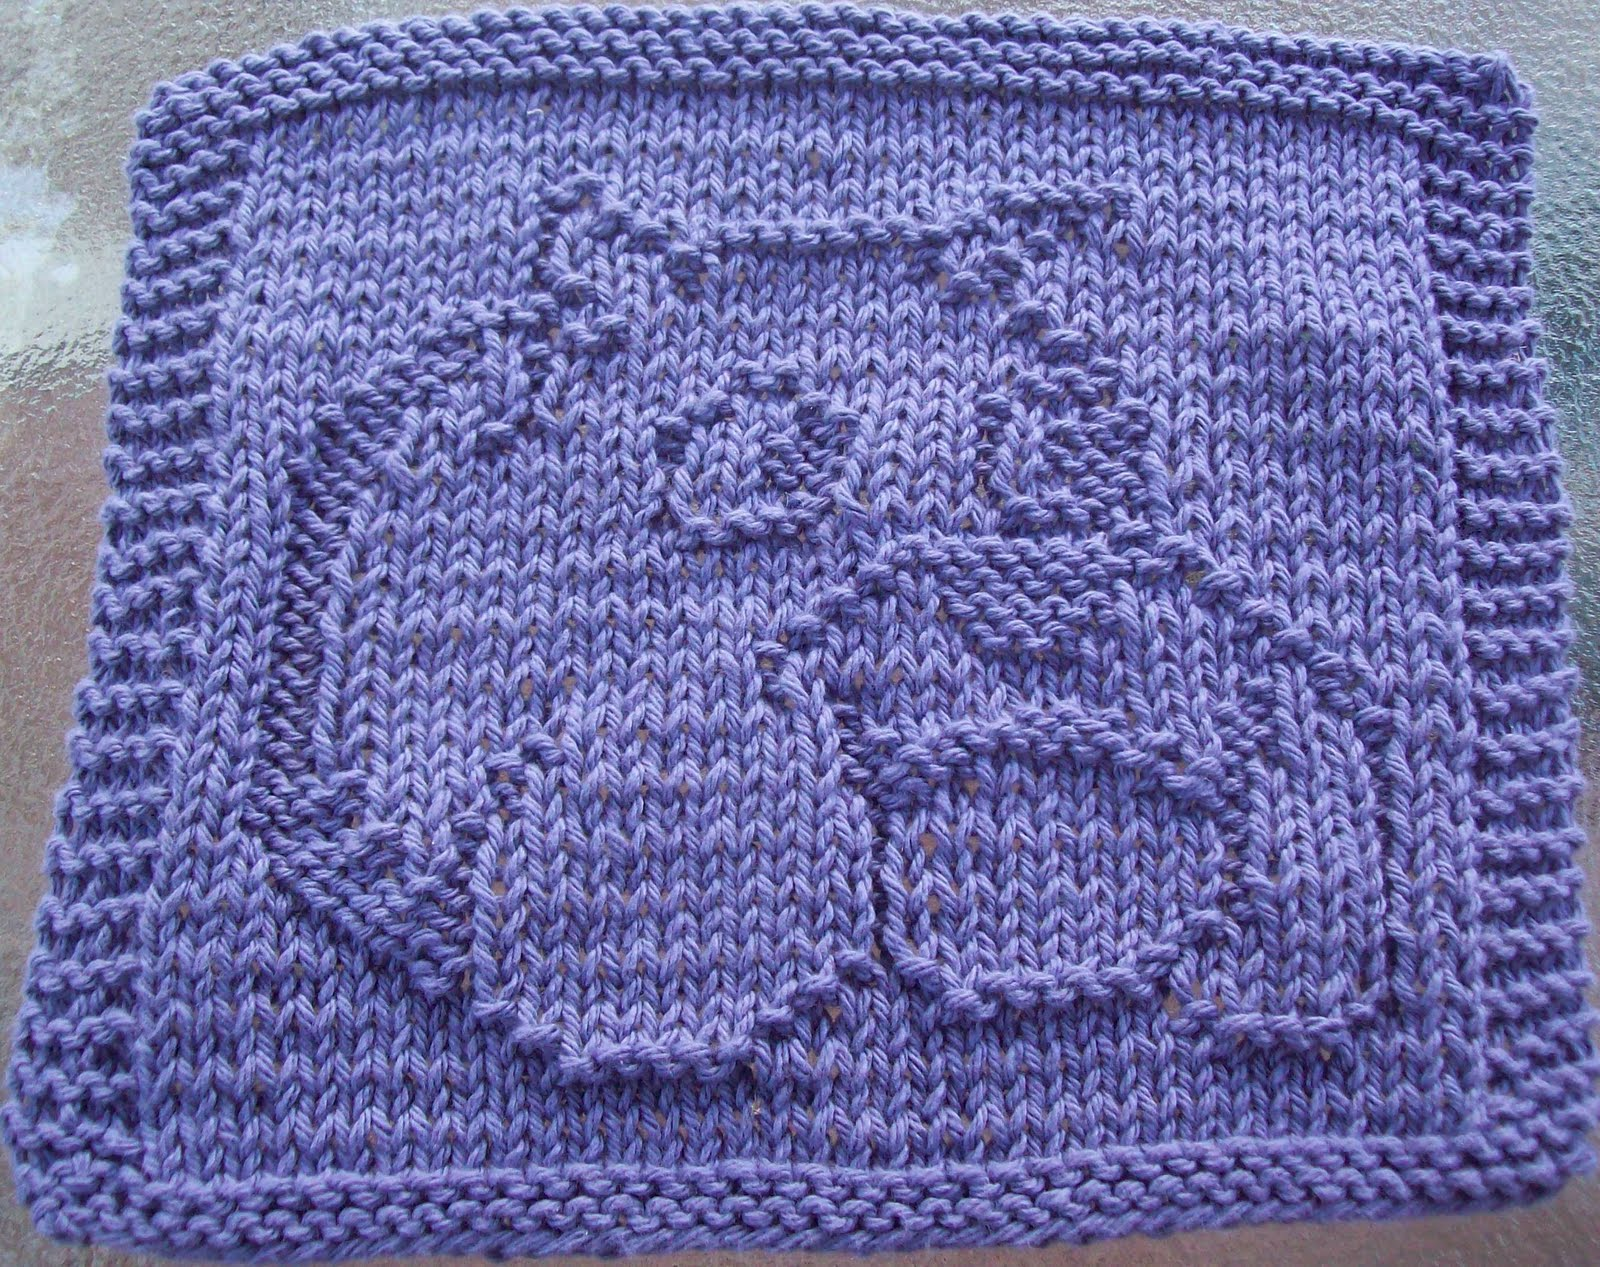 Dishcloth Knit Patterns Free : DigKnitty Designs: Bulldog Knit Dishcloth Pattern